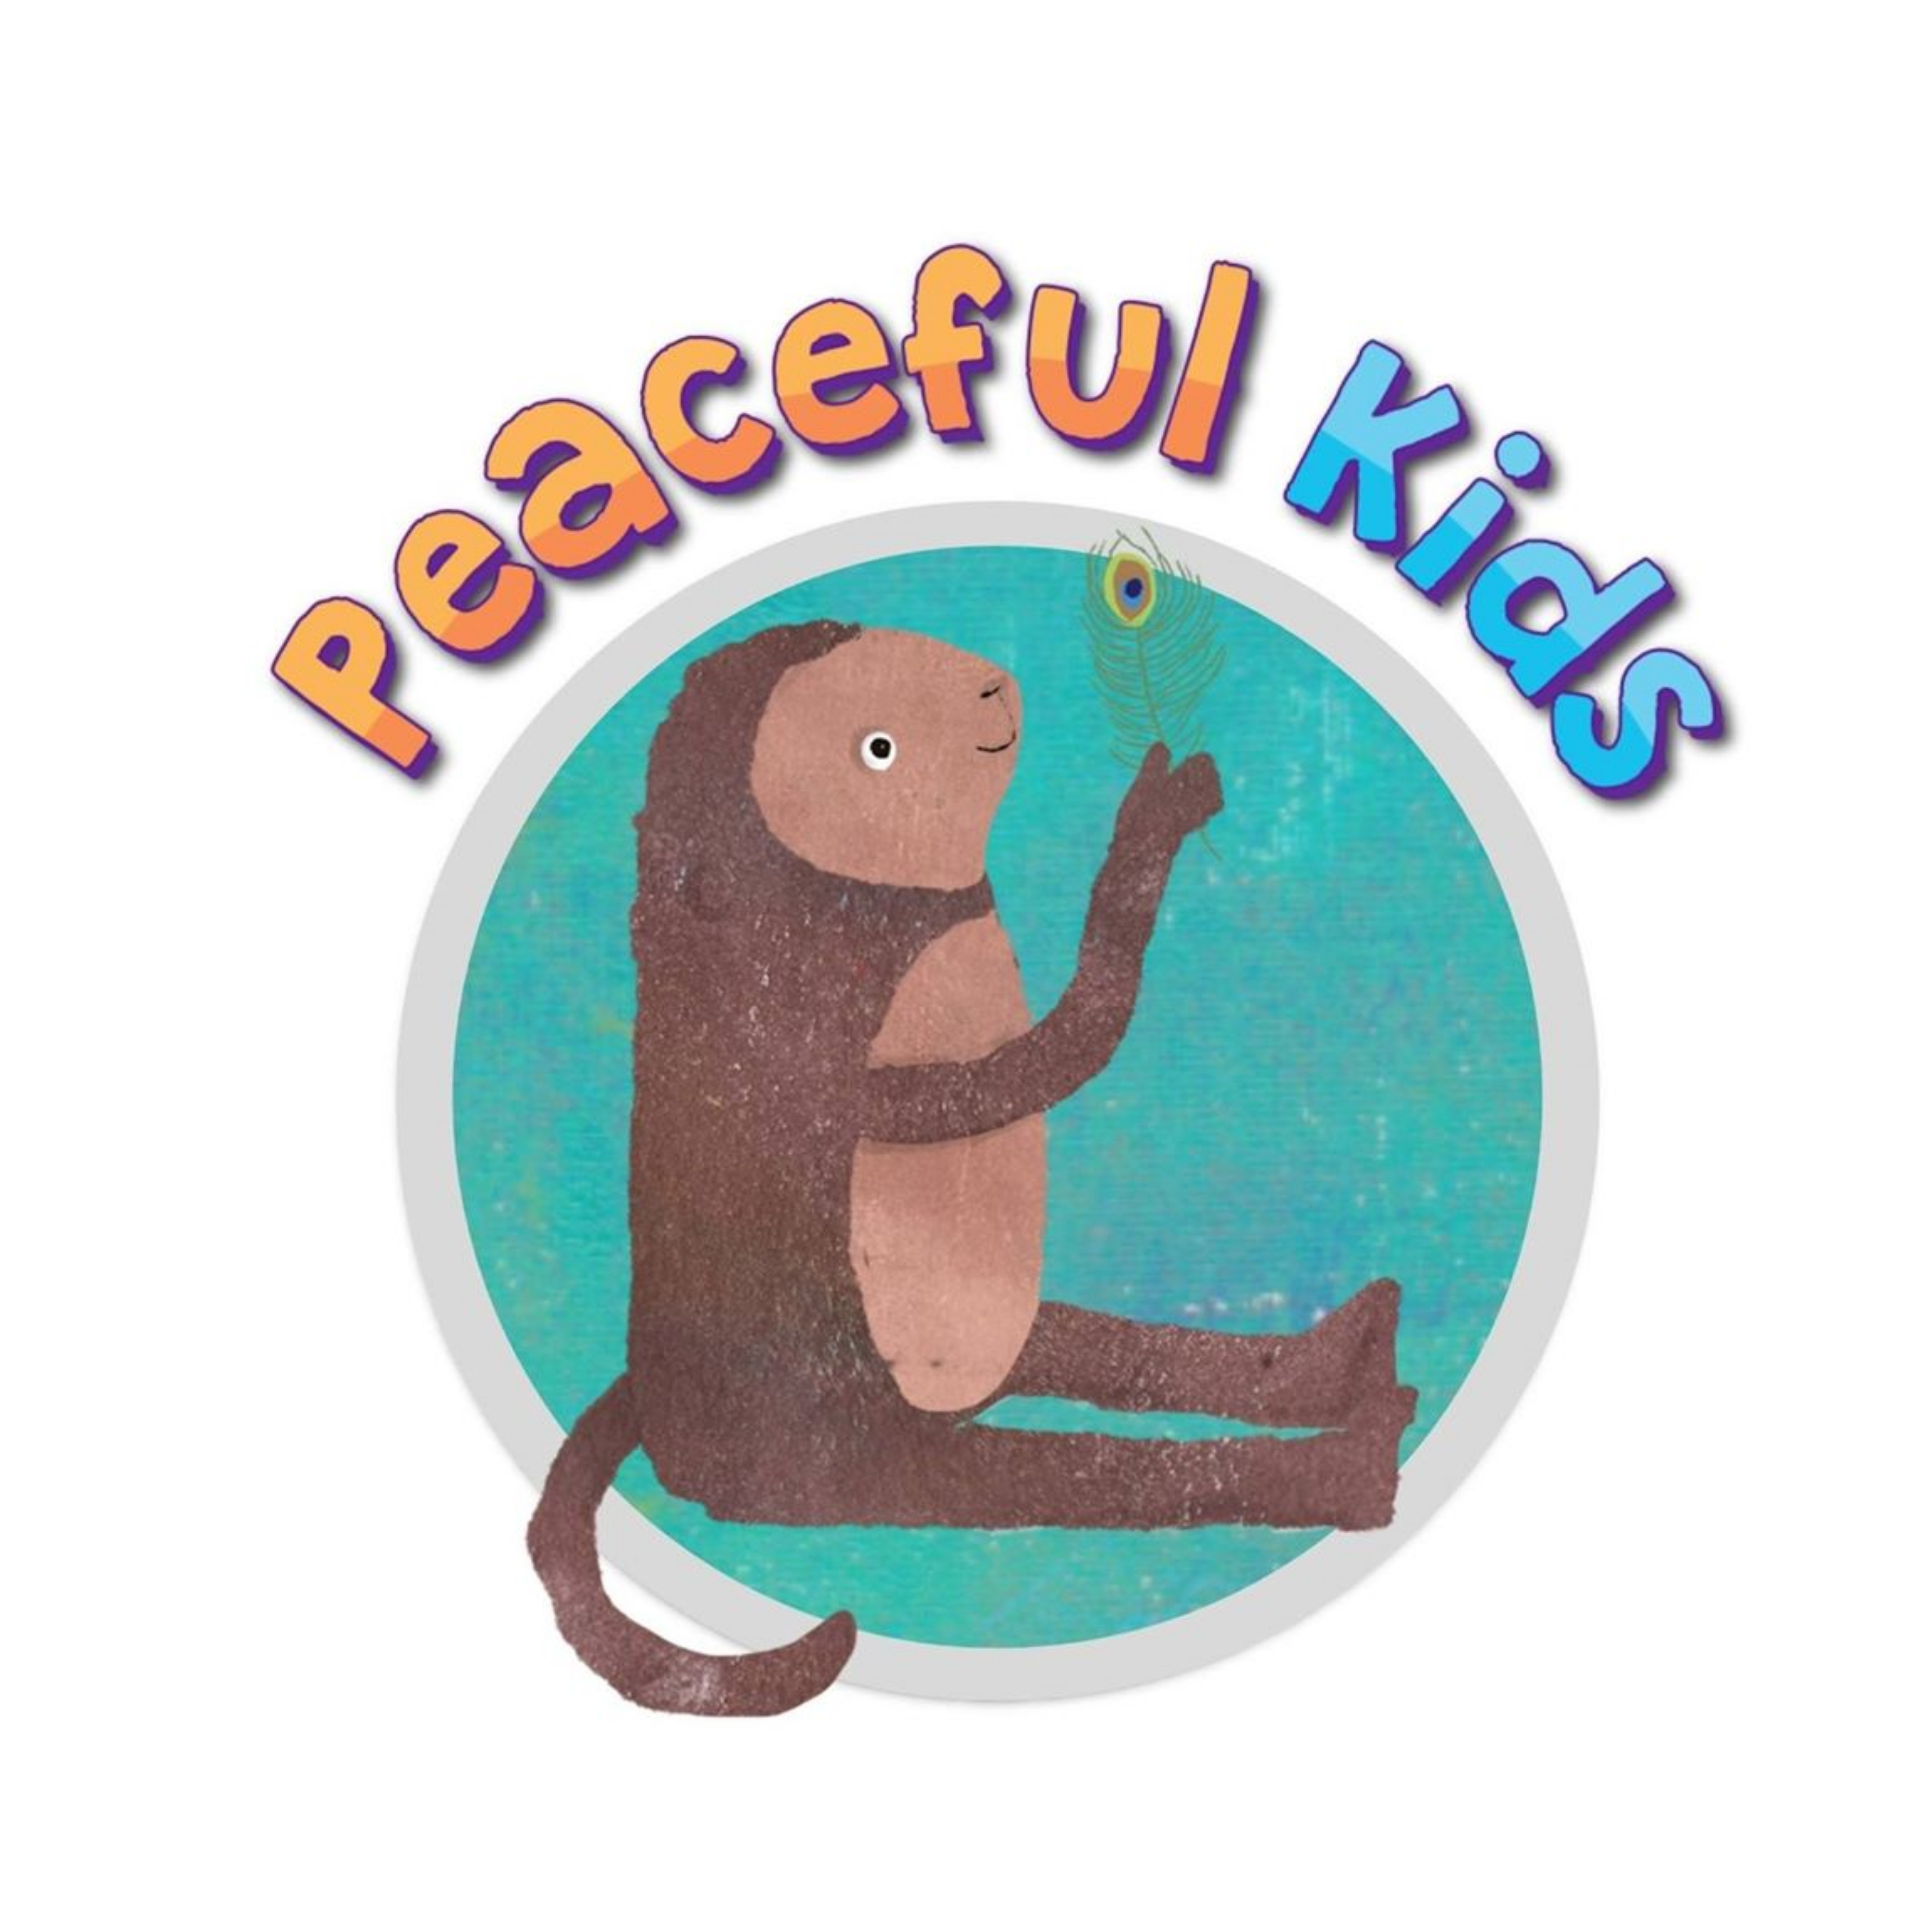 Term 3 Peaceful Kids 6-9 year olds